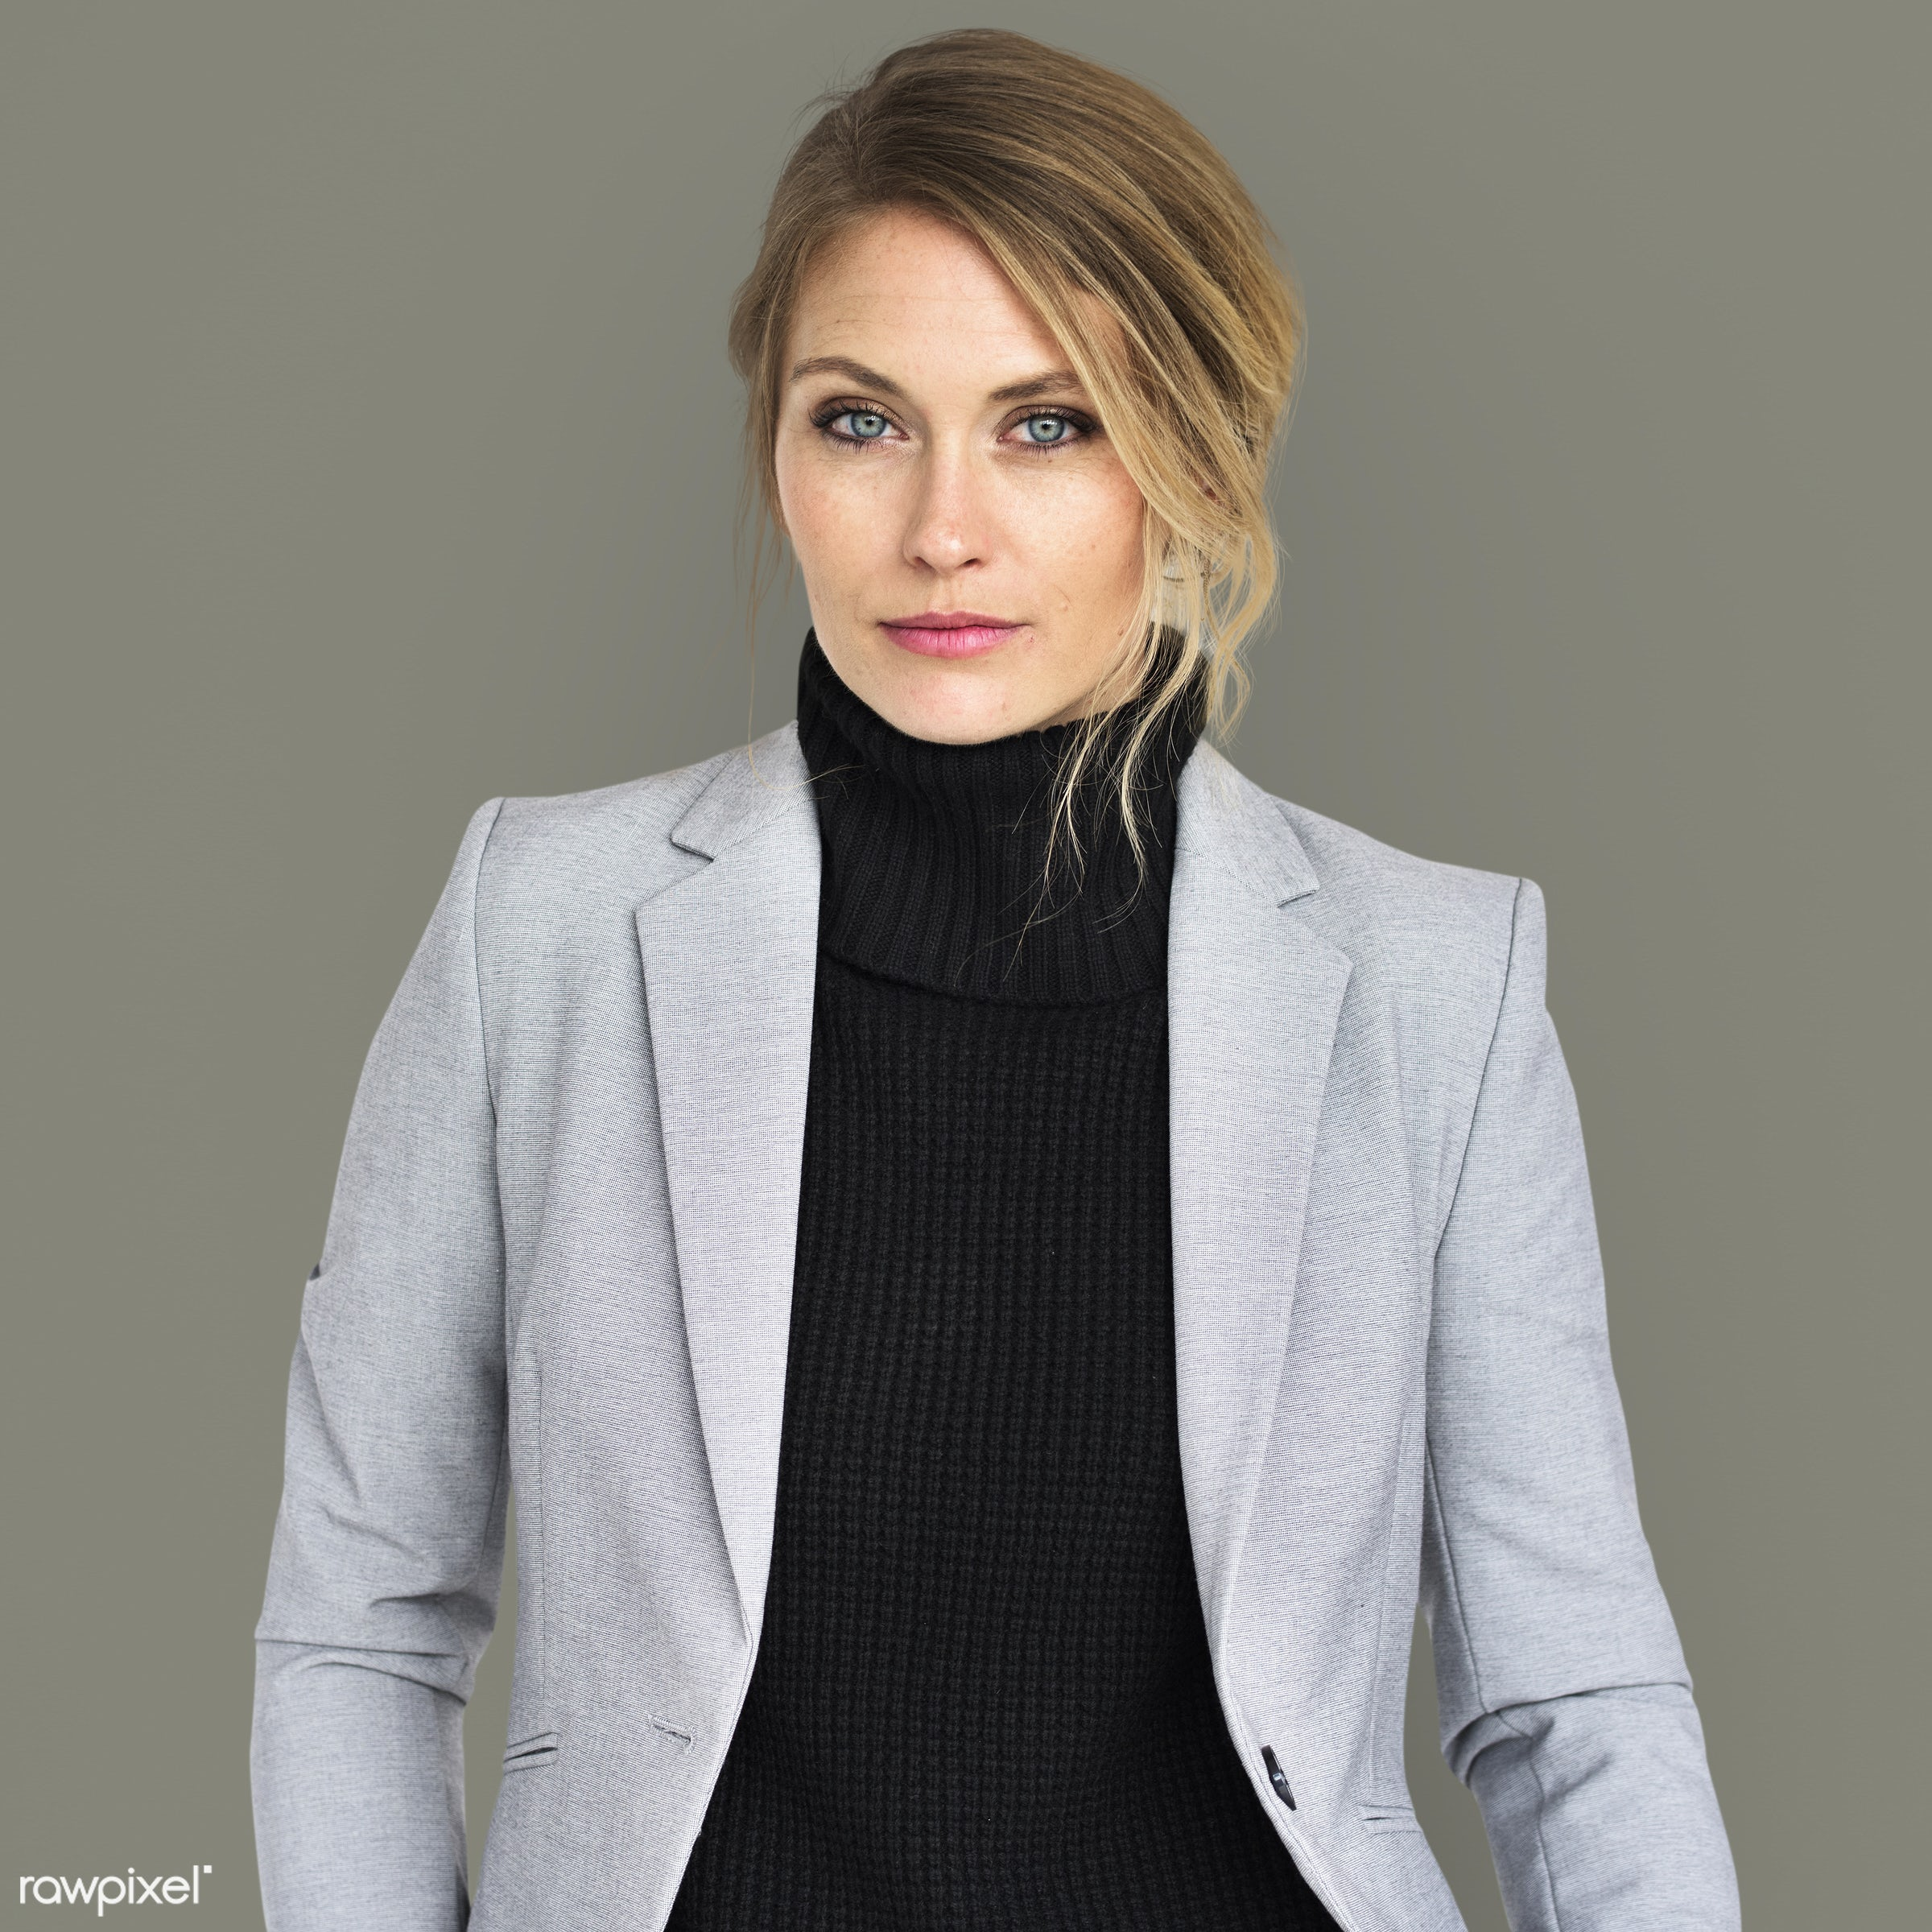 expression, studio, person, business wear, business dressing, people, formal dressing, business, caucasian, girl, woman,...